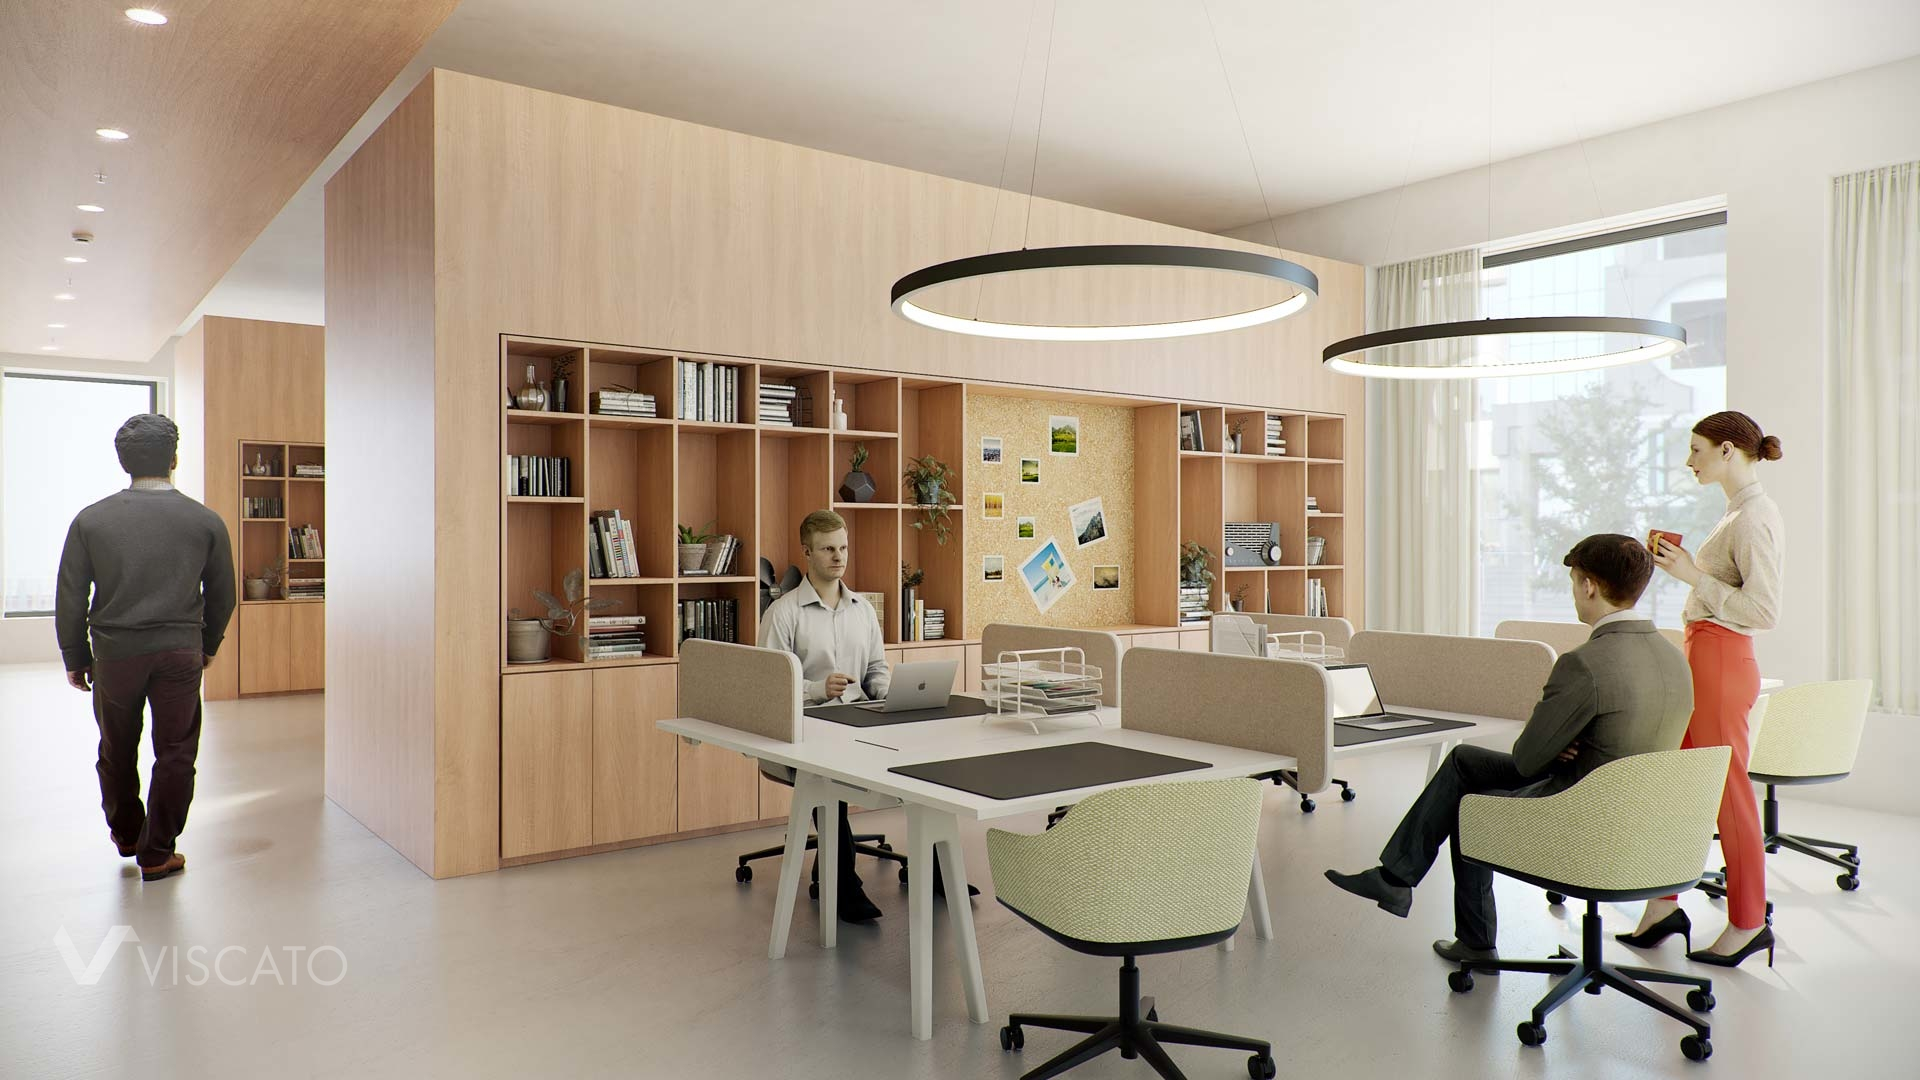 Modern workspace in the Spaces Office, Viscato